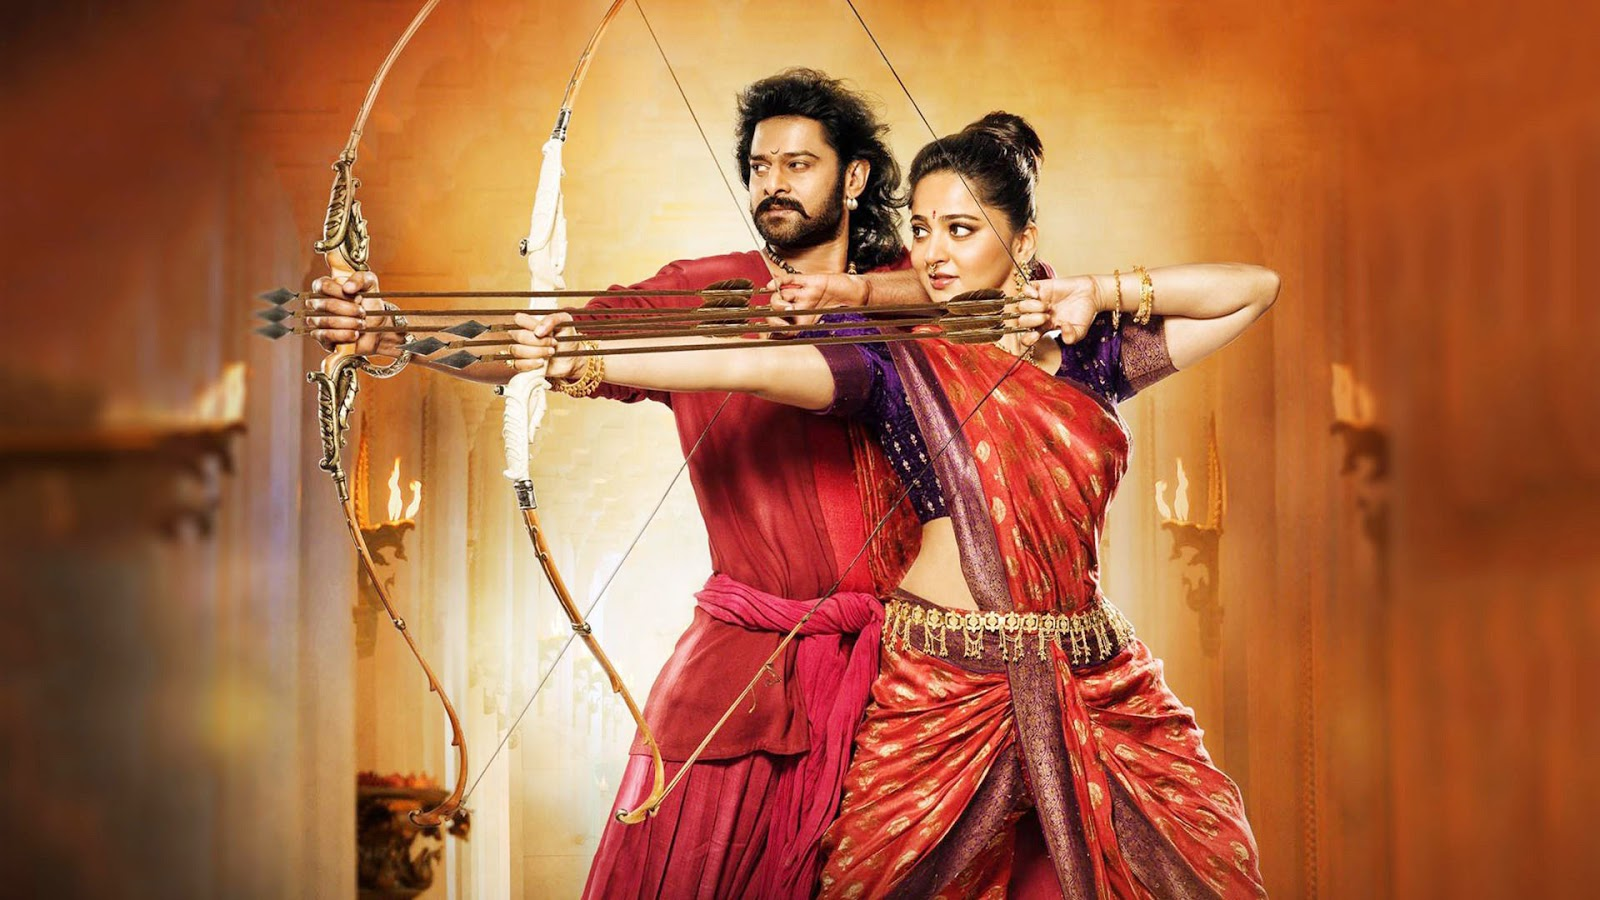 Baahubali 2 : The Conclusion Film HD Wallpapers Download